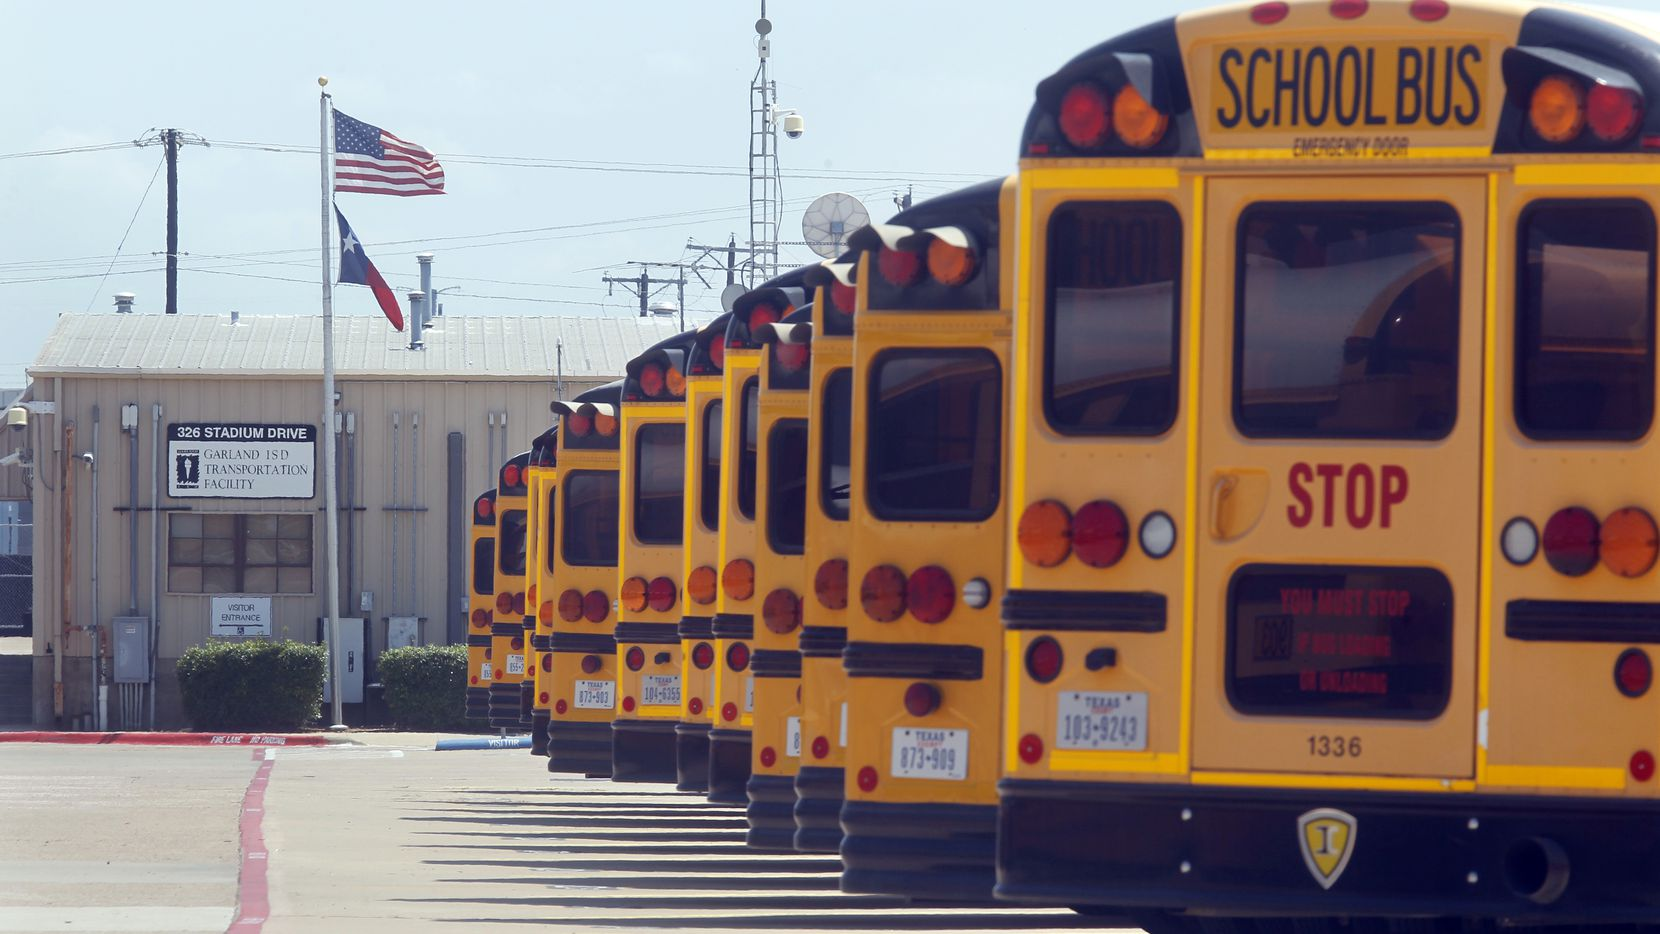 Busses at the  Garland ISD Transportation Facility in Garland Texas, on July 12, 2013.